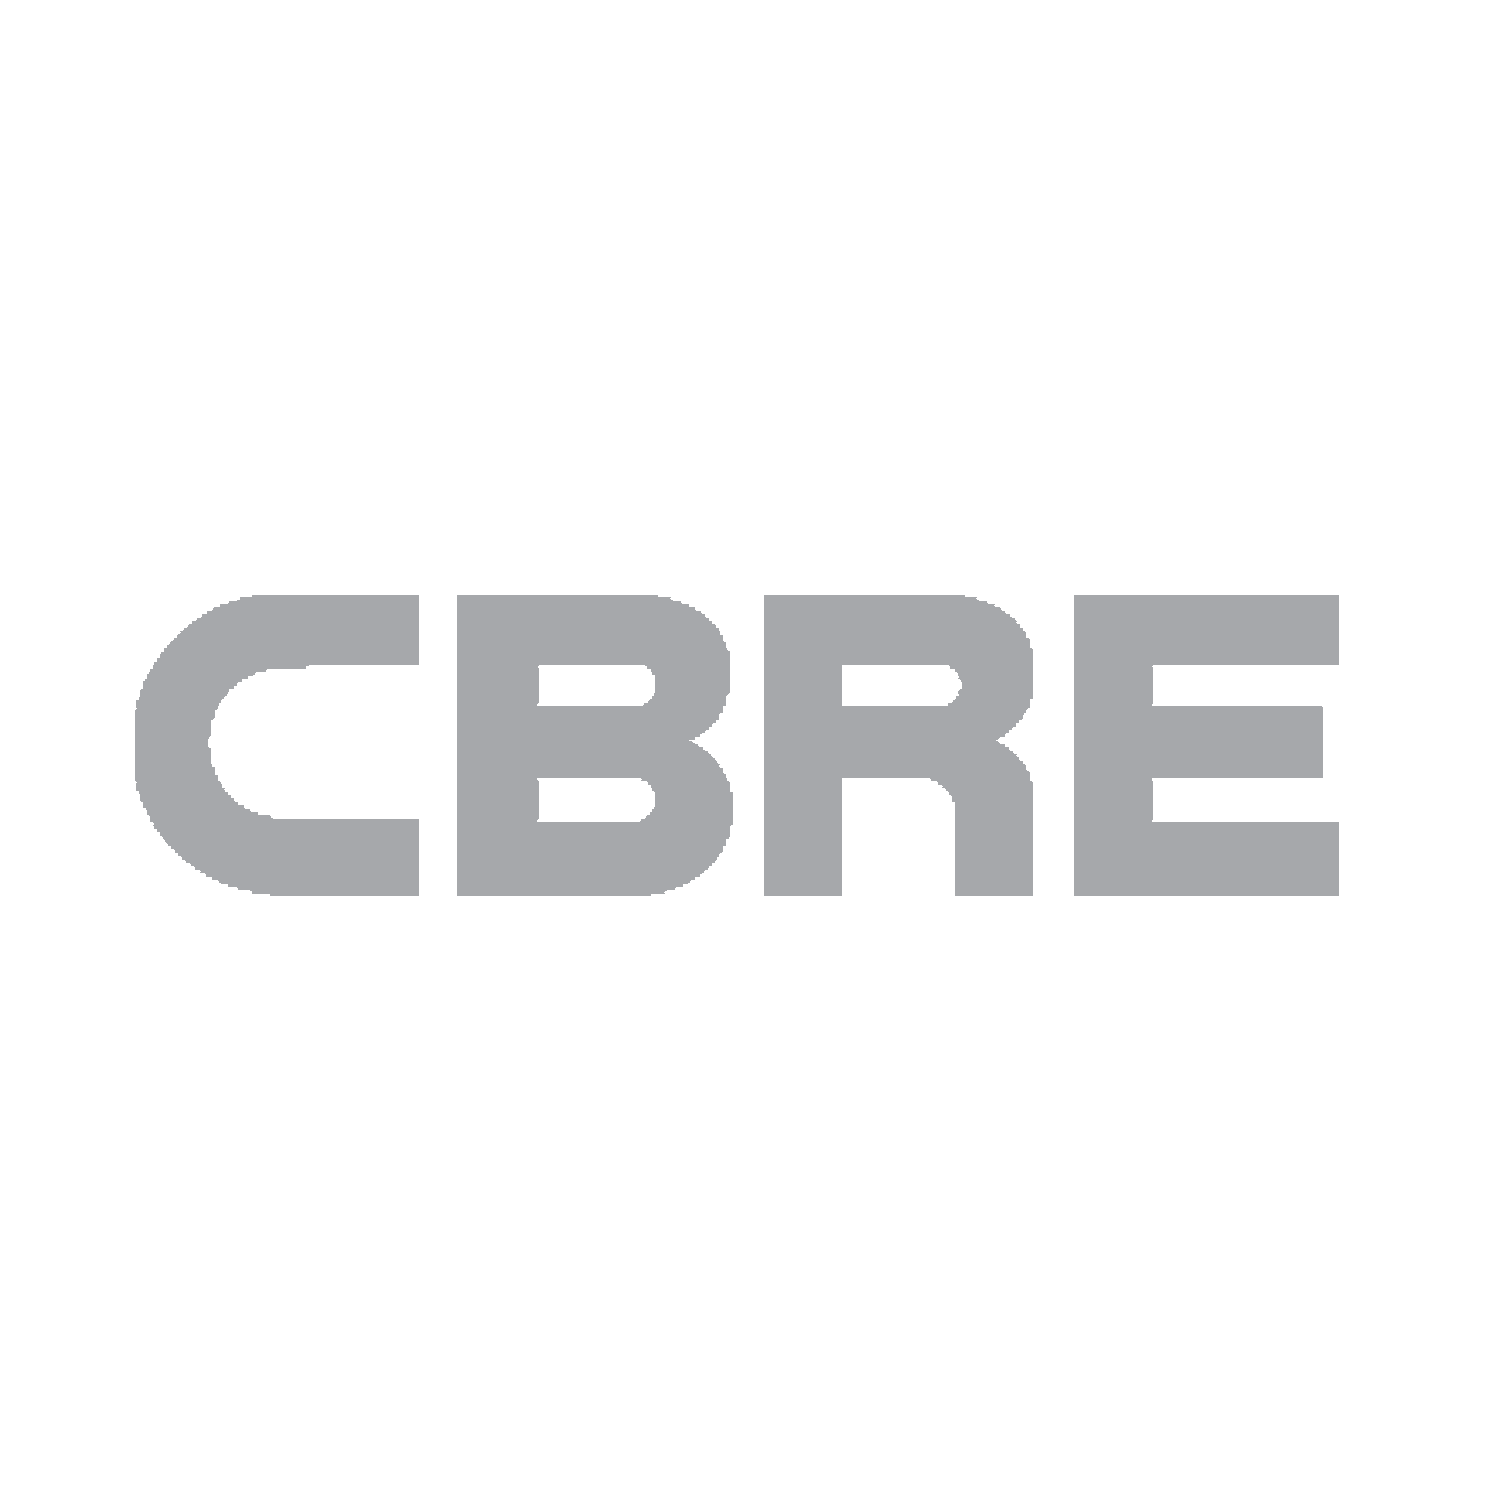 CBRE grey square.png